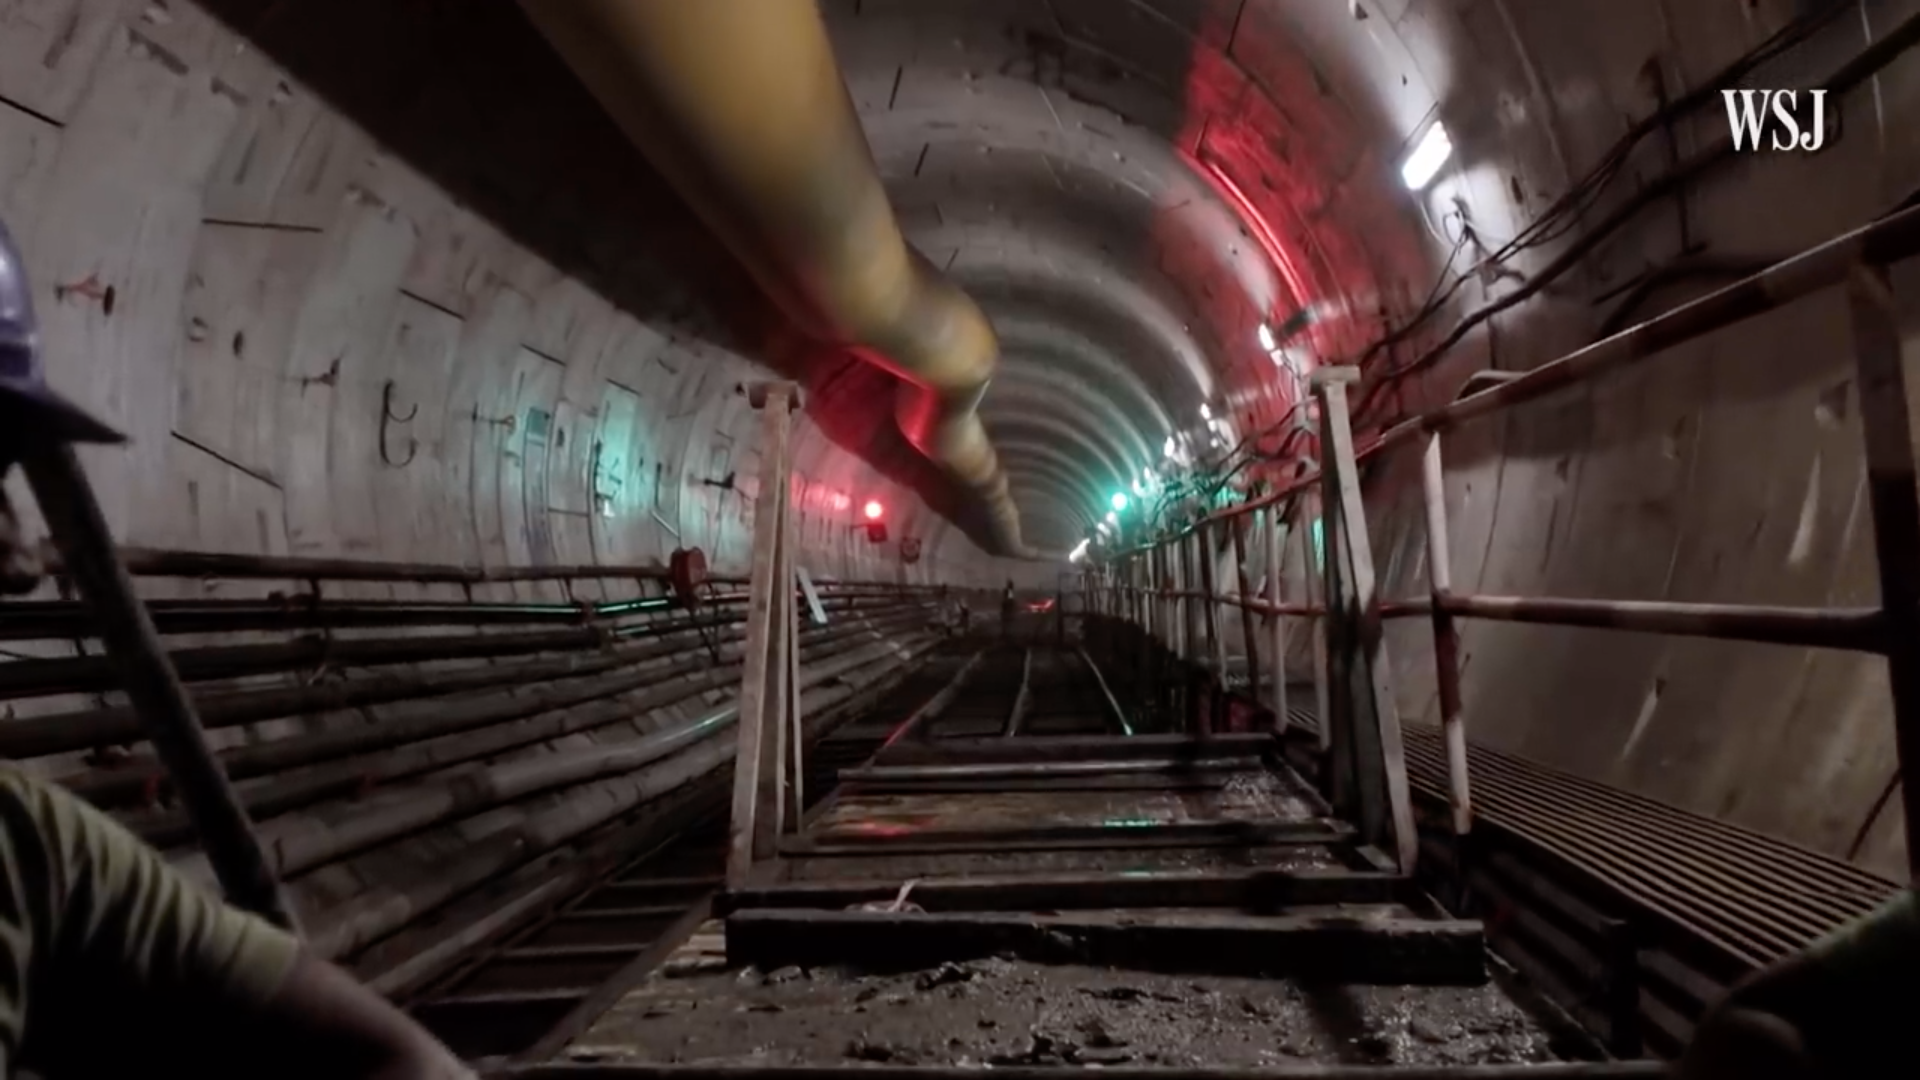 Find out how Mumbai is building a subway system in one of the world's busiest cities